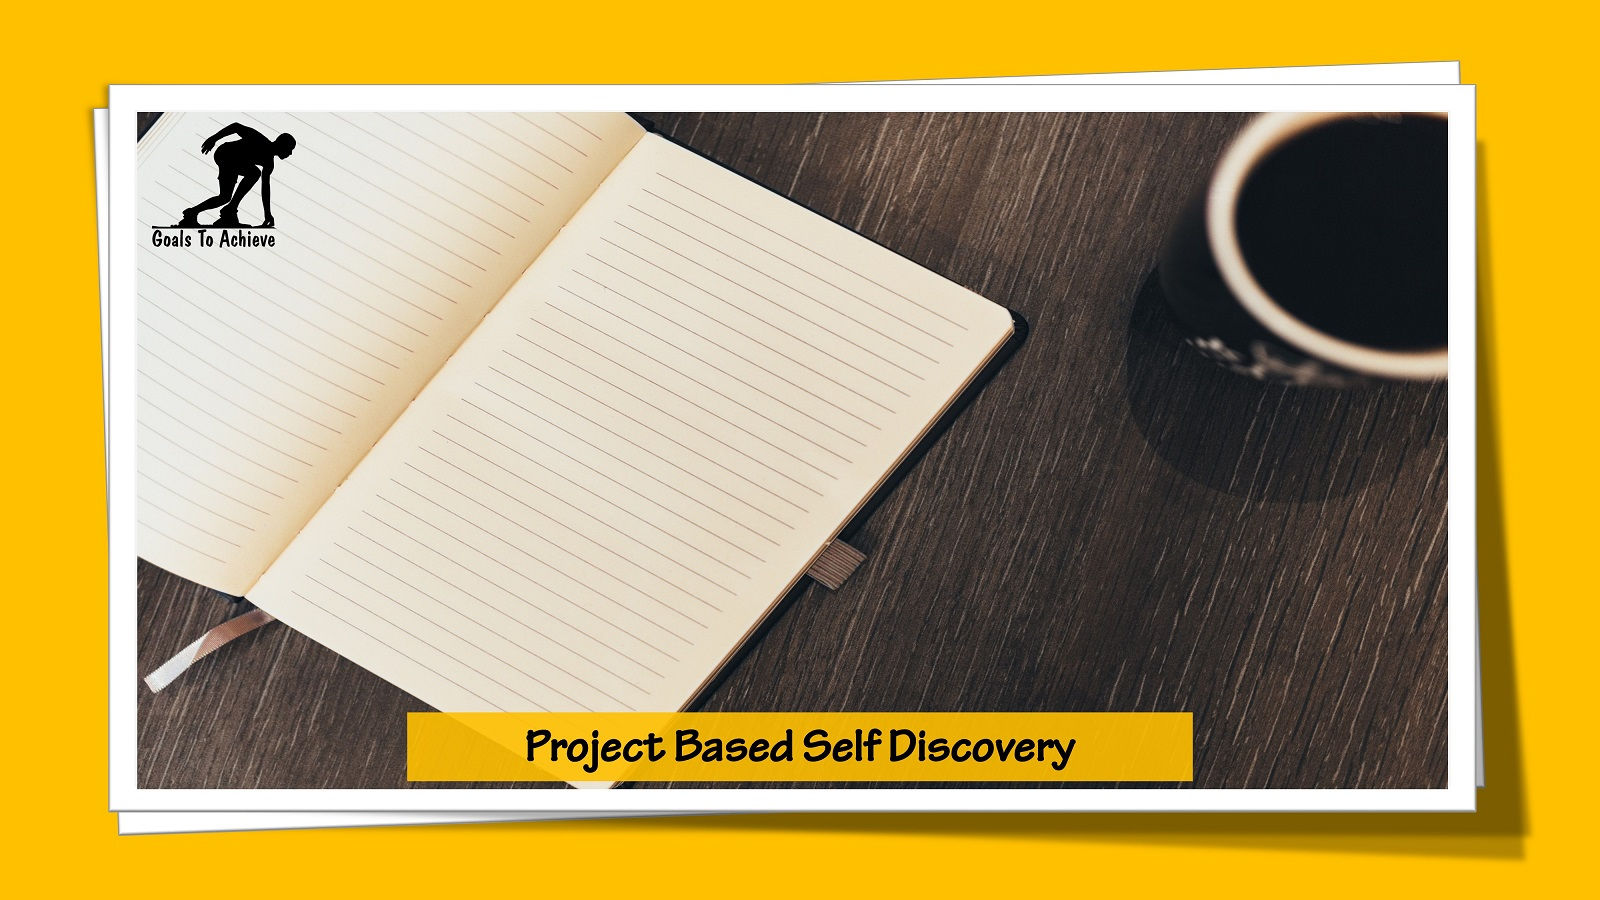 Project Based Self Discovery